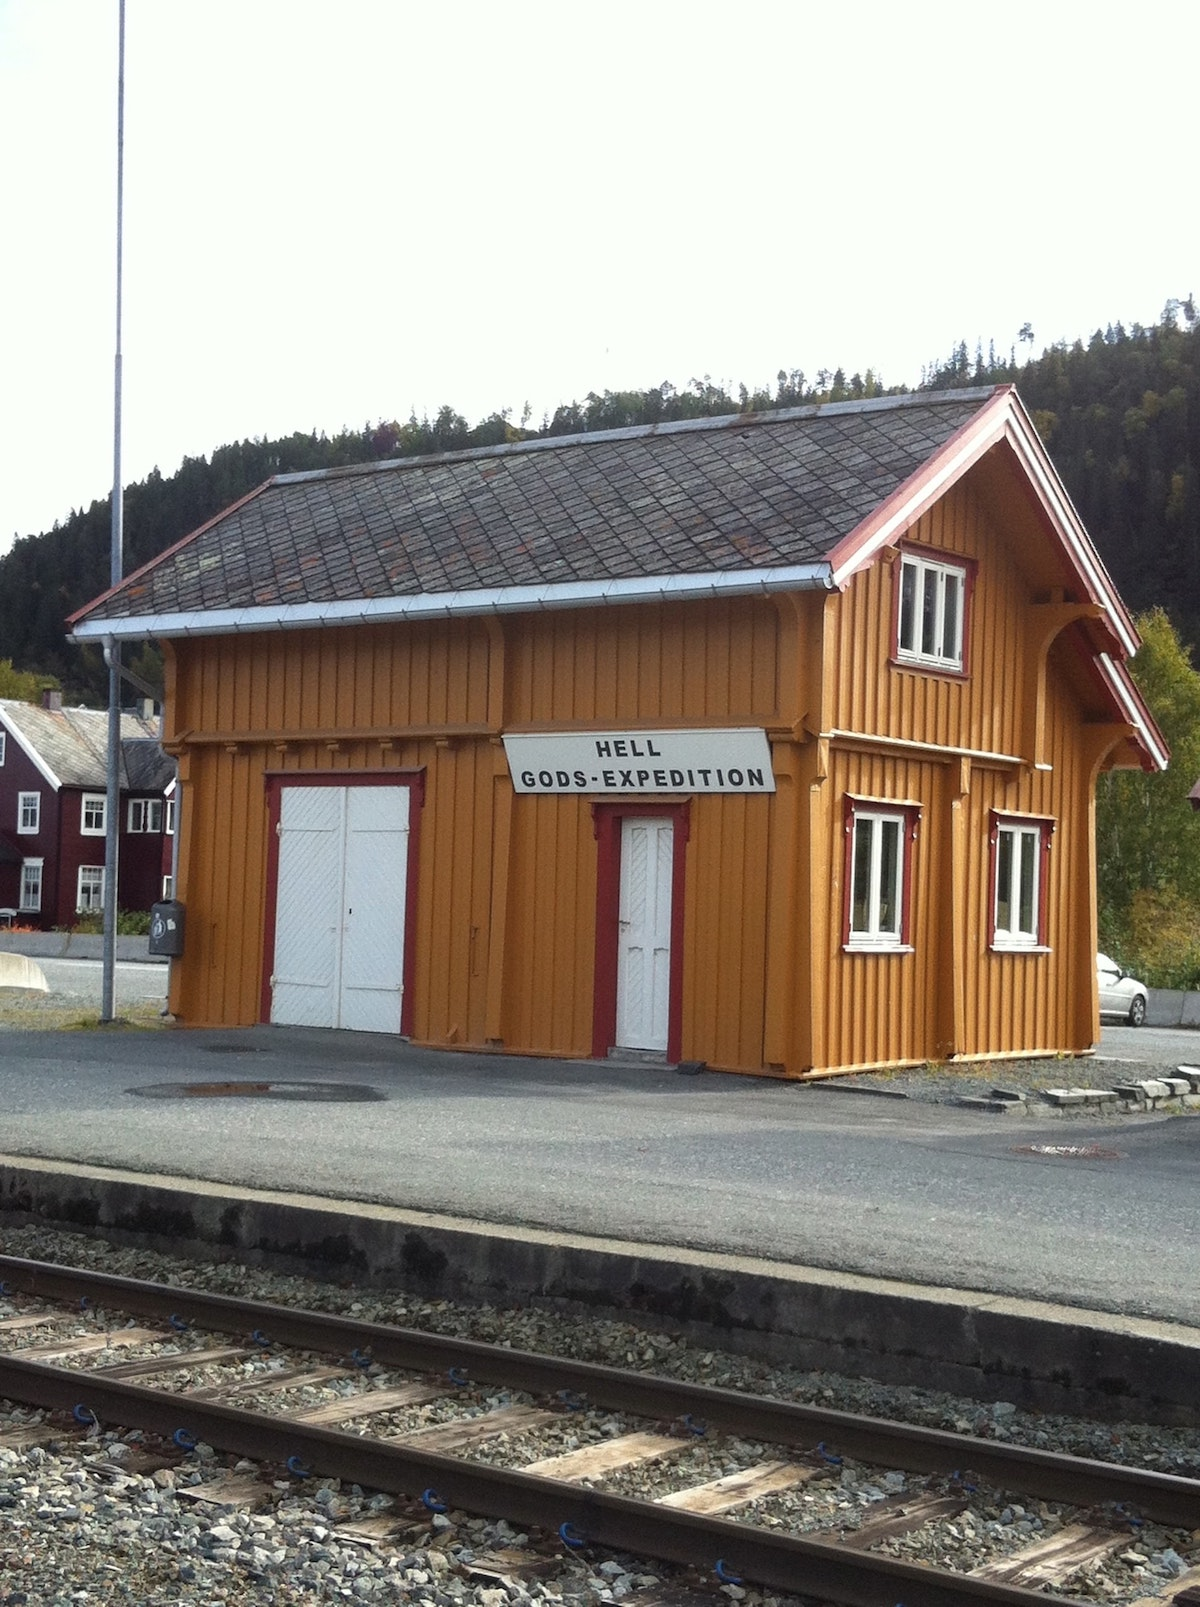 Hell Train Station